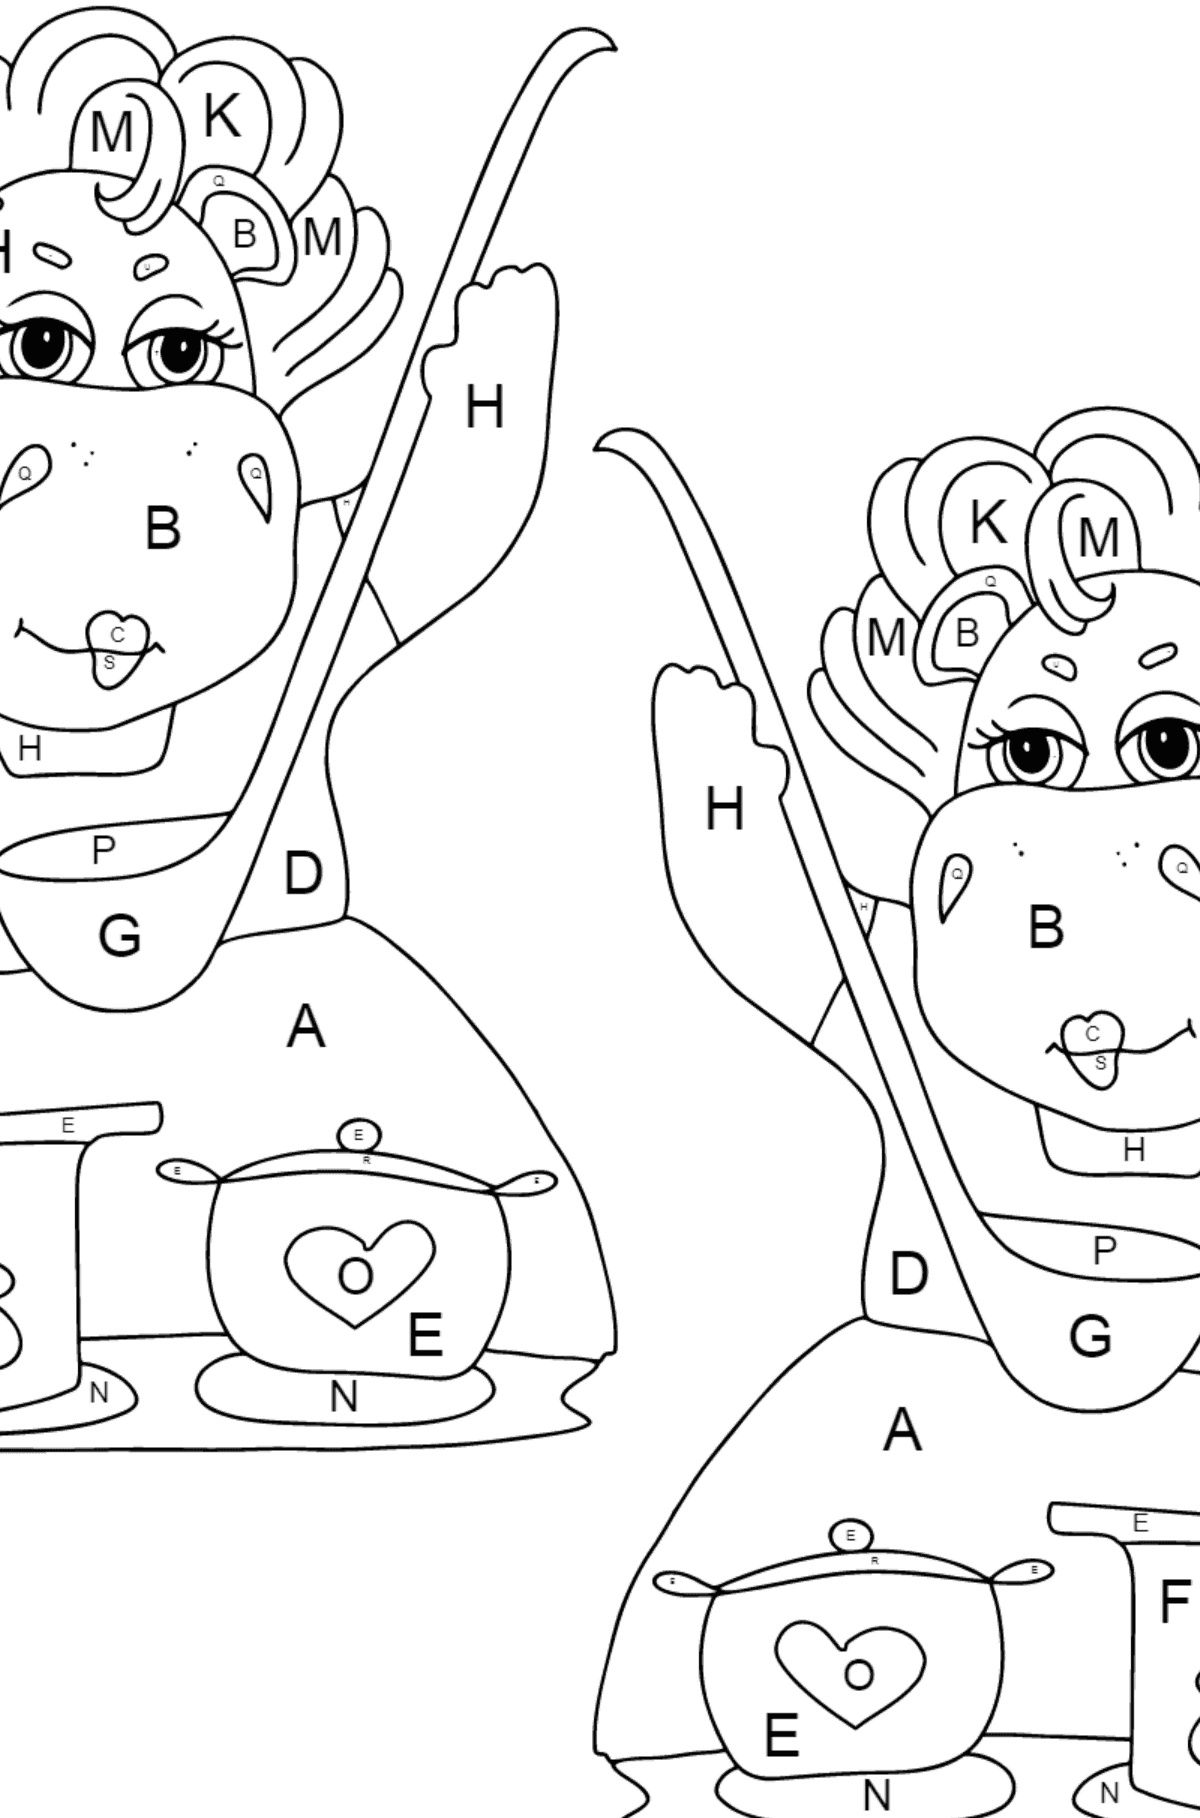 Coloring Page - Hippos are Cooking a Delicious Lunch for Kids  - Color by Letters